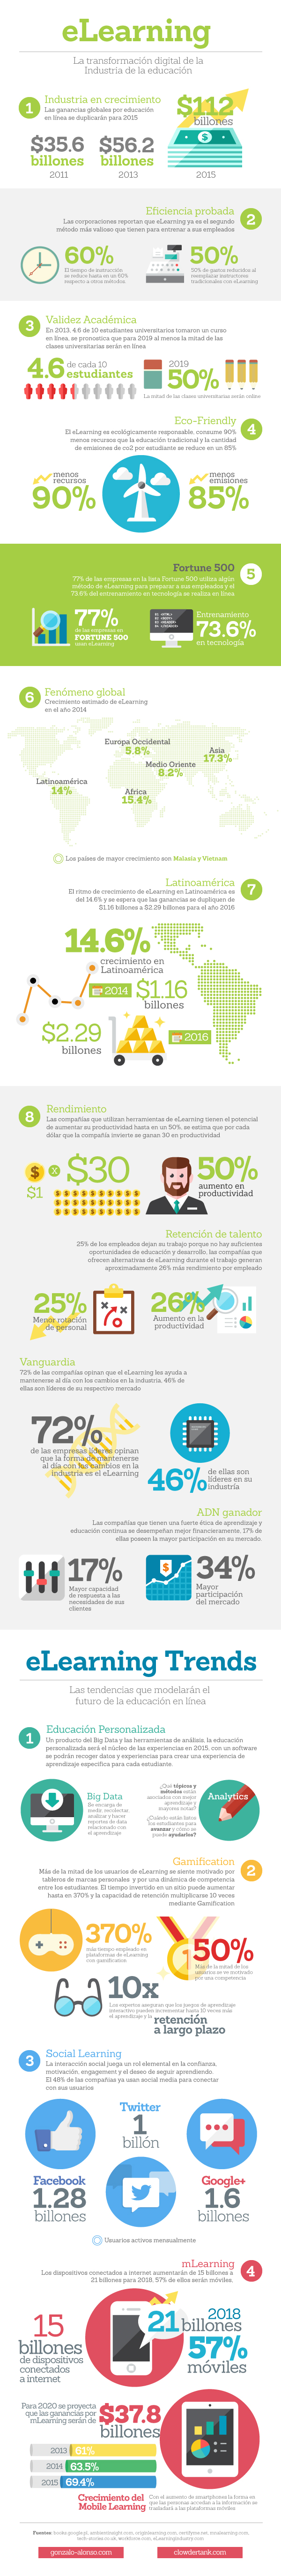 eLearning: transformación digital de la Educación